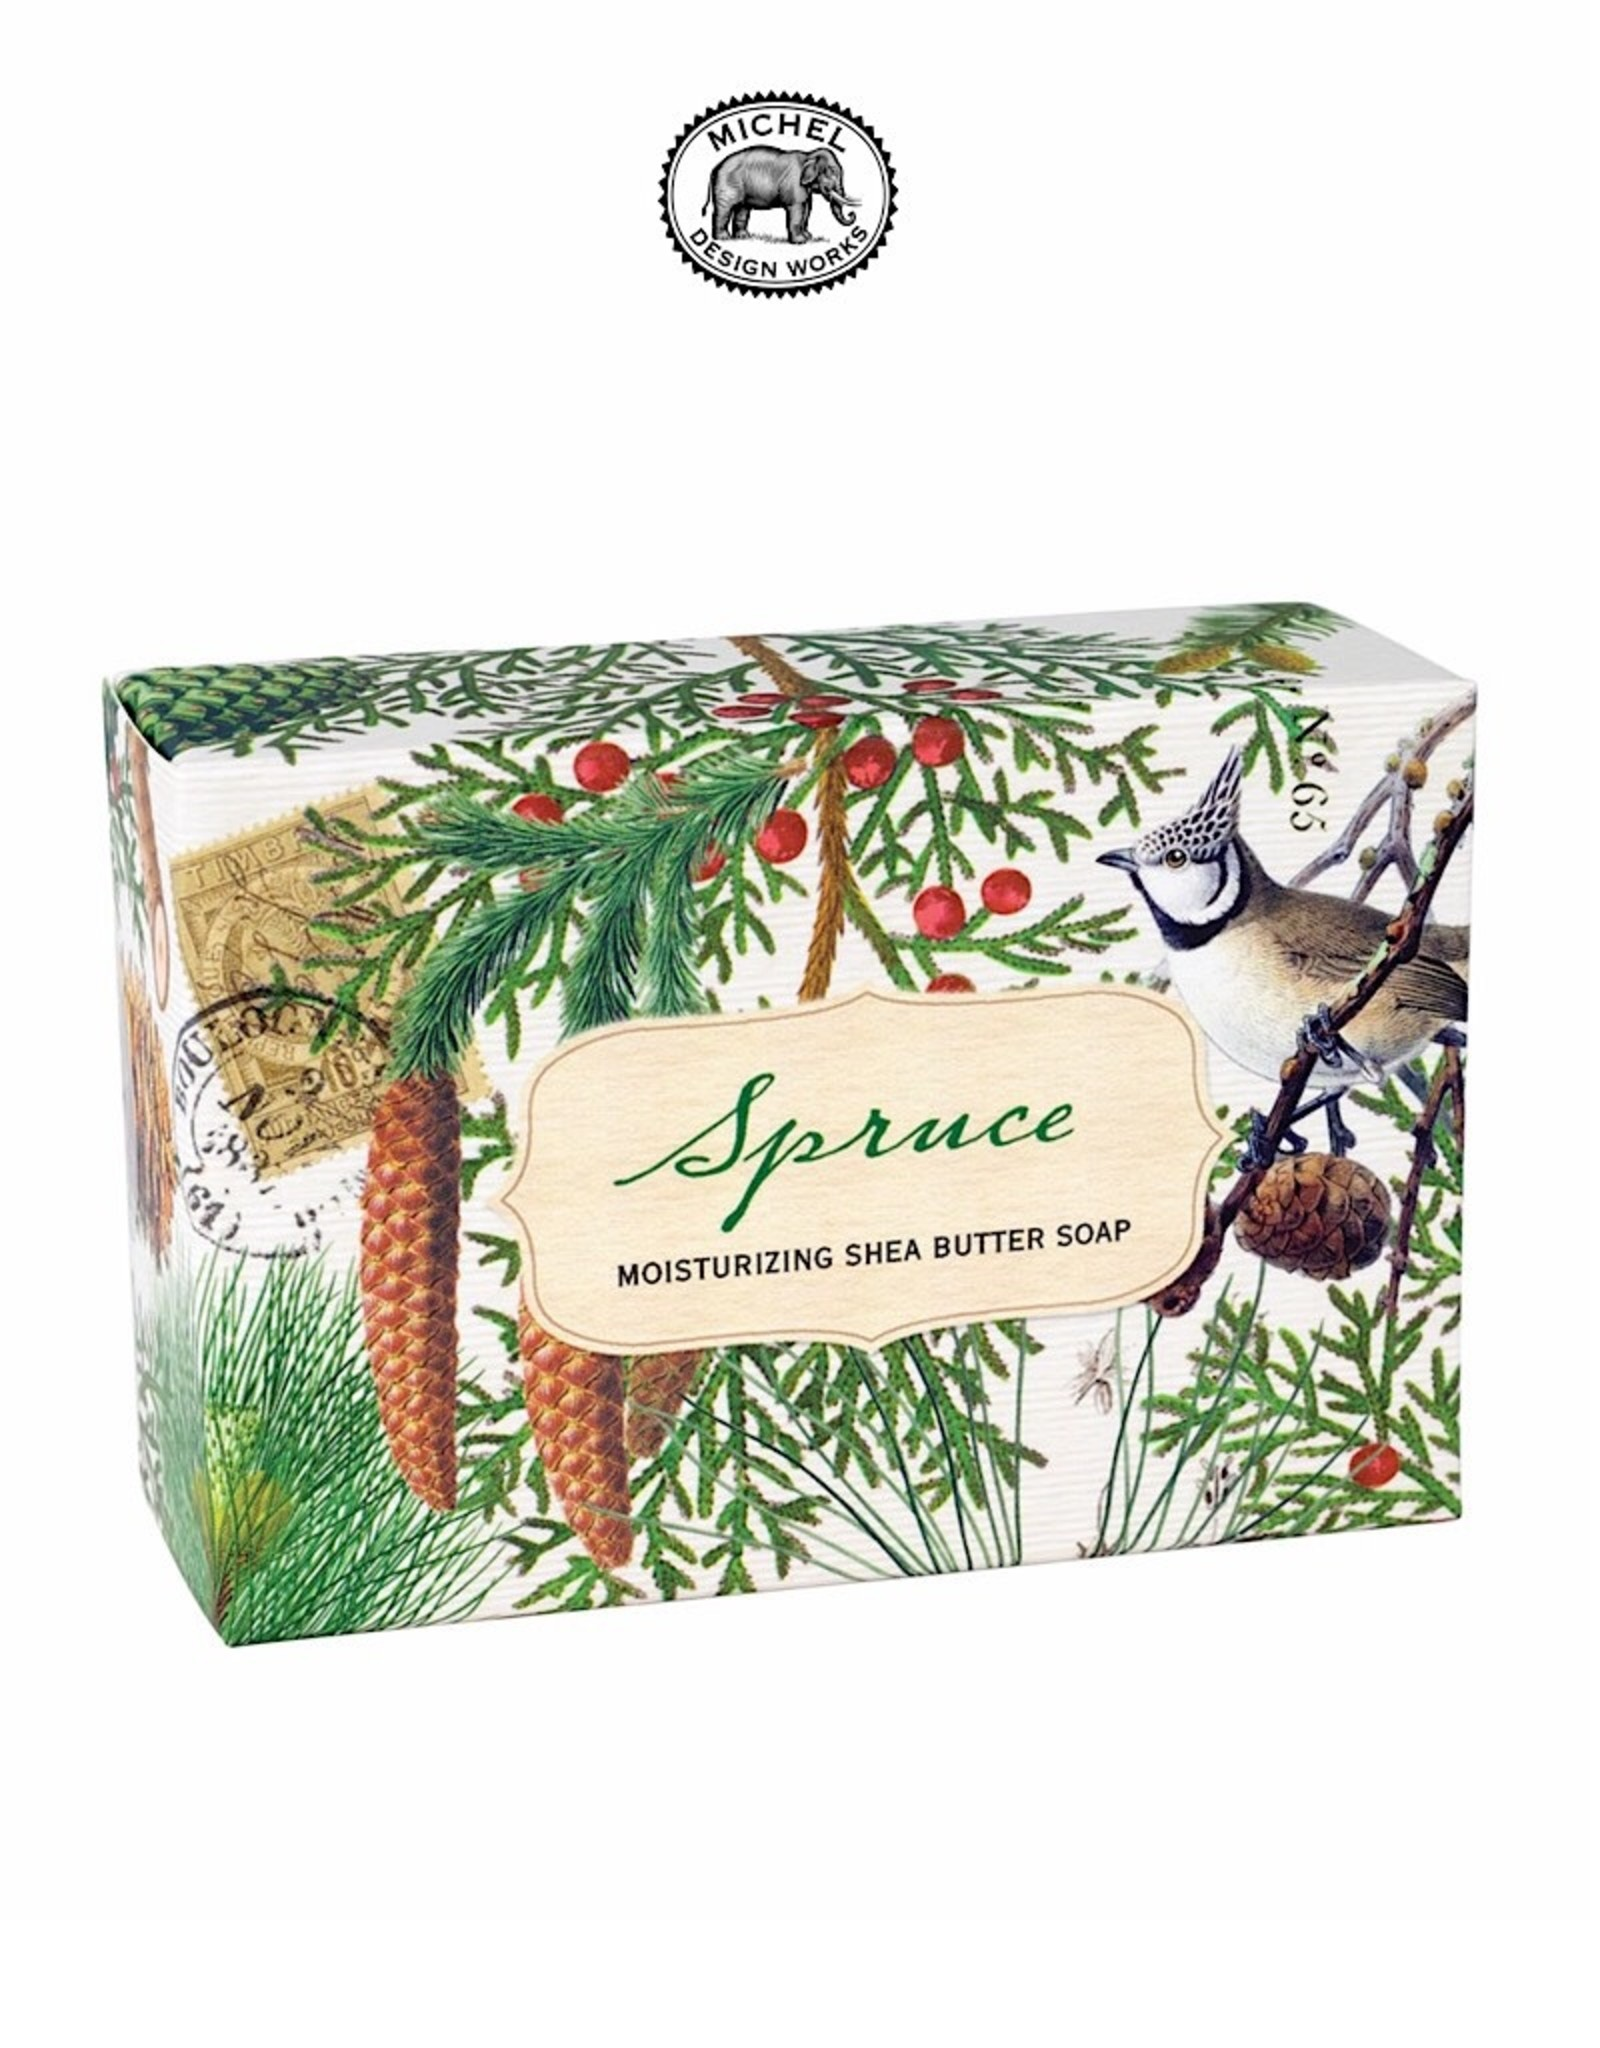 SOAX257 Spruce 4.5 oz Boxed Soap